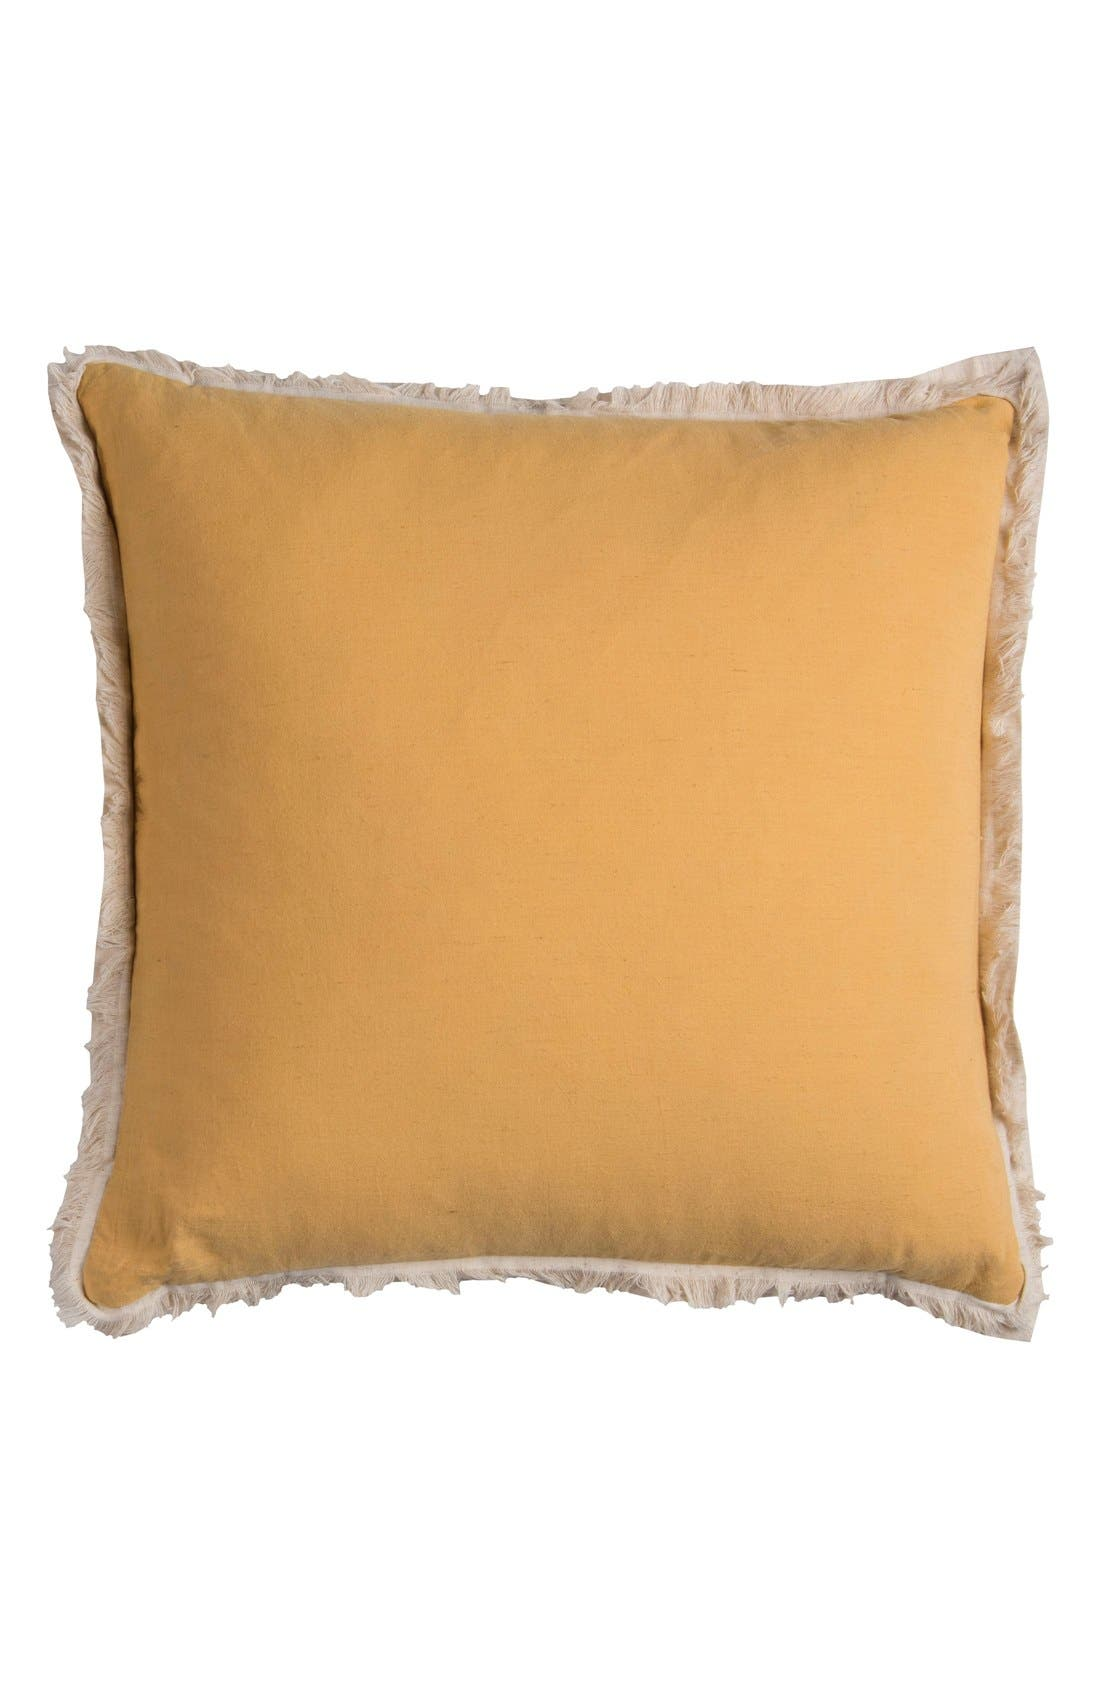 Fringe Accent Pillow,                         Main,                         color, 100